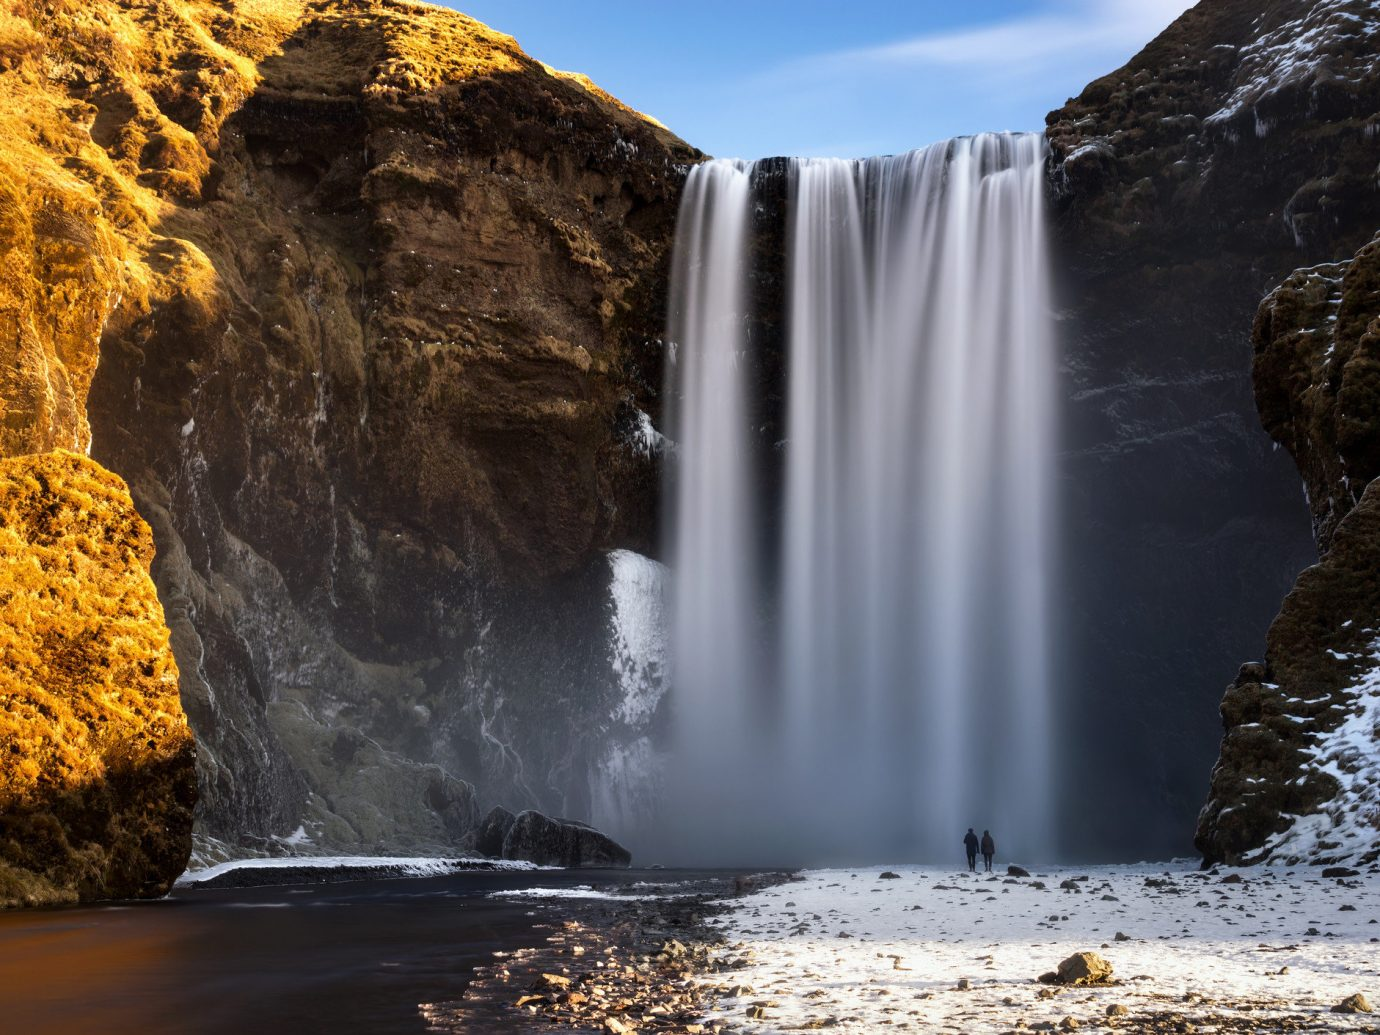 View of a waterfall in Iceland